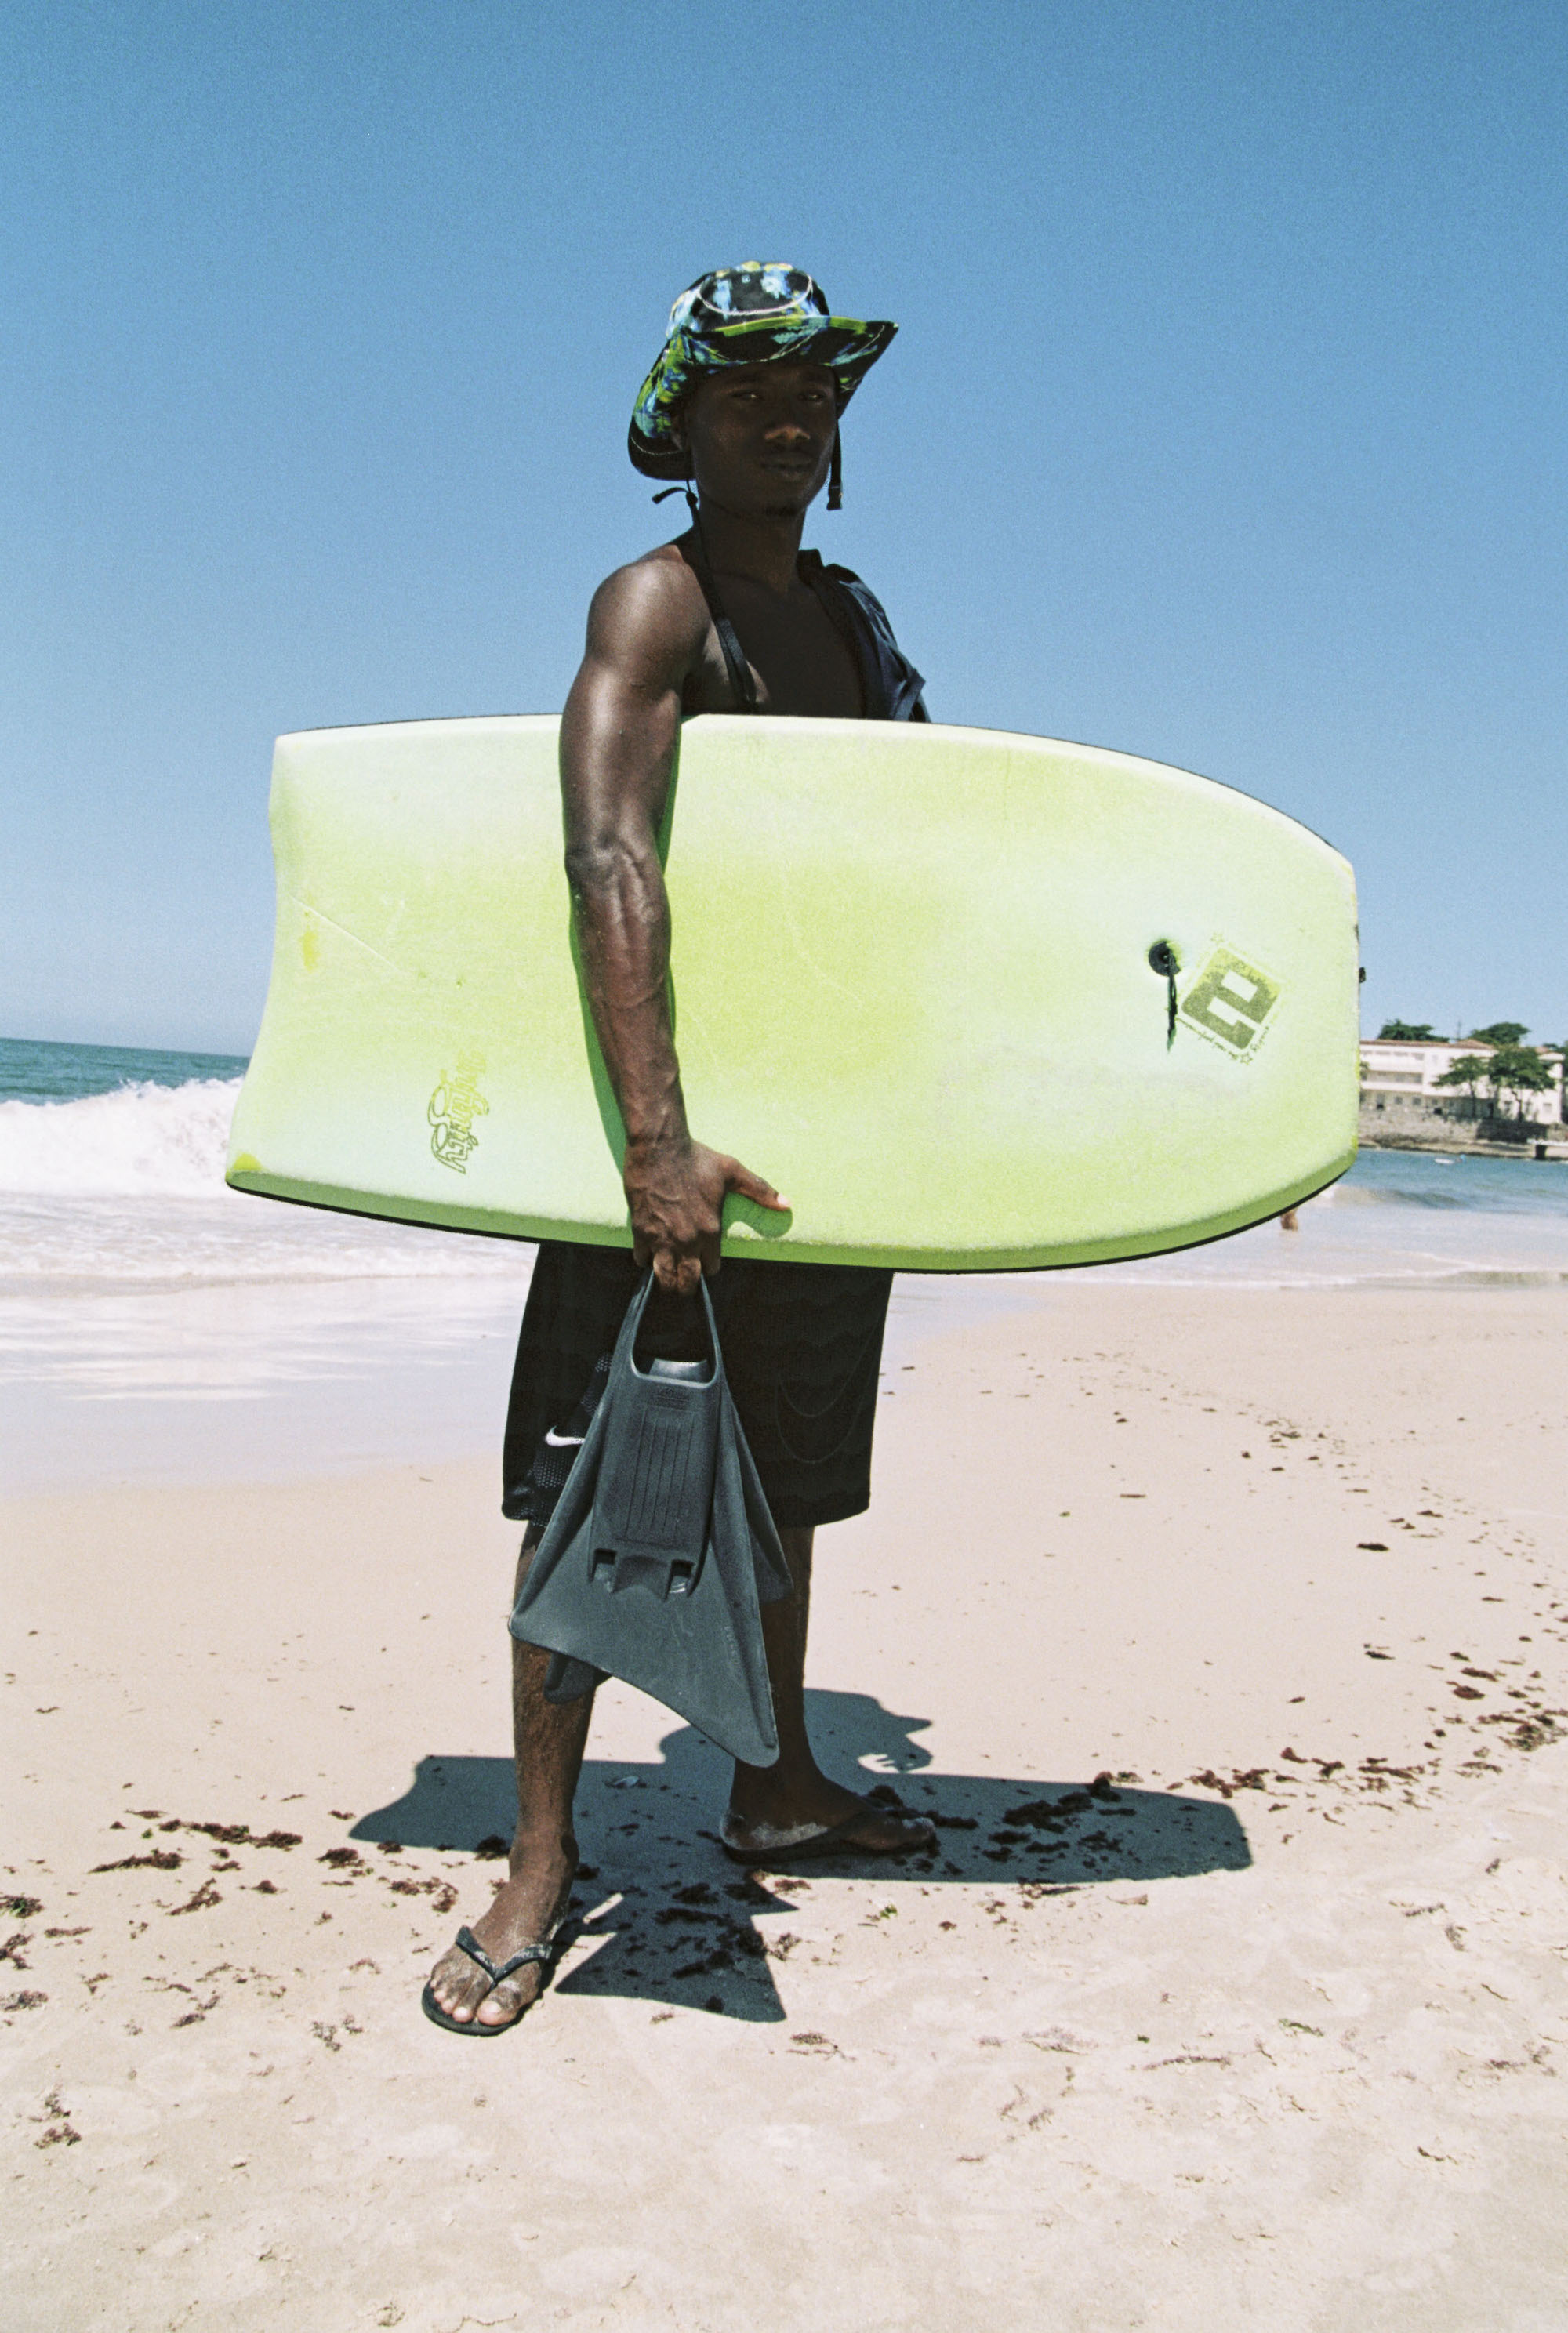 Cariocas Black guy with surf board on beach